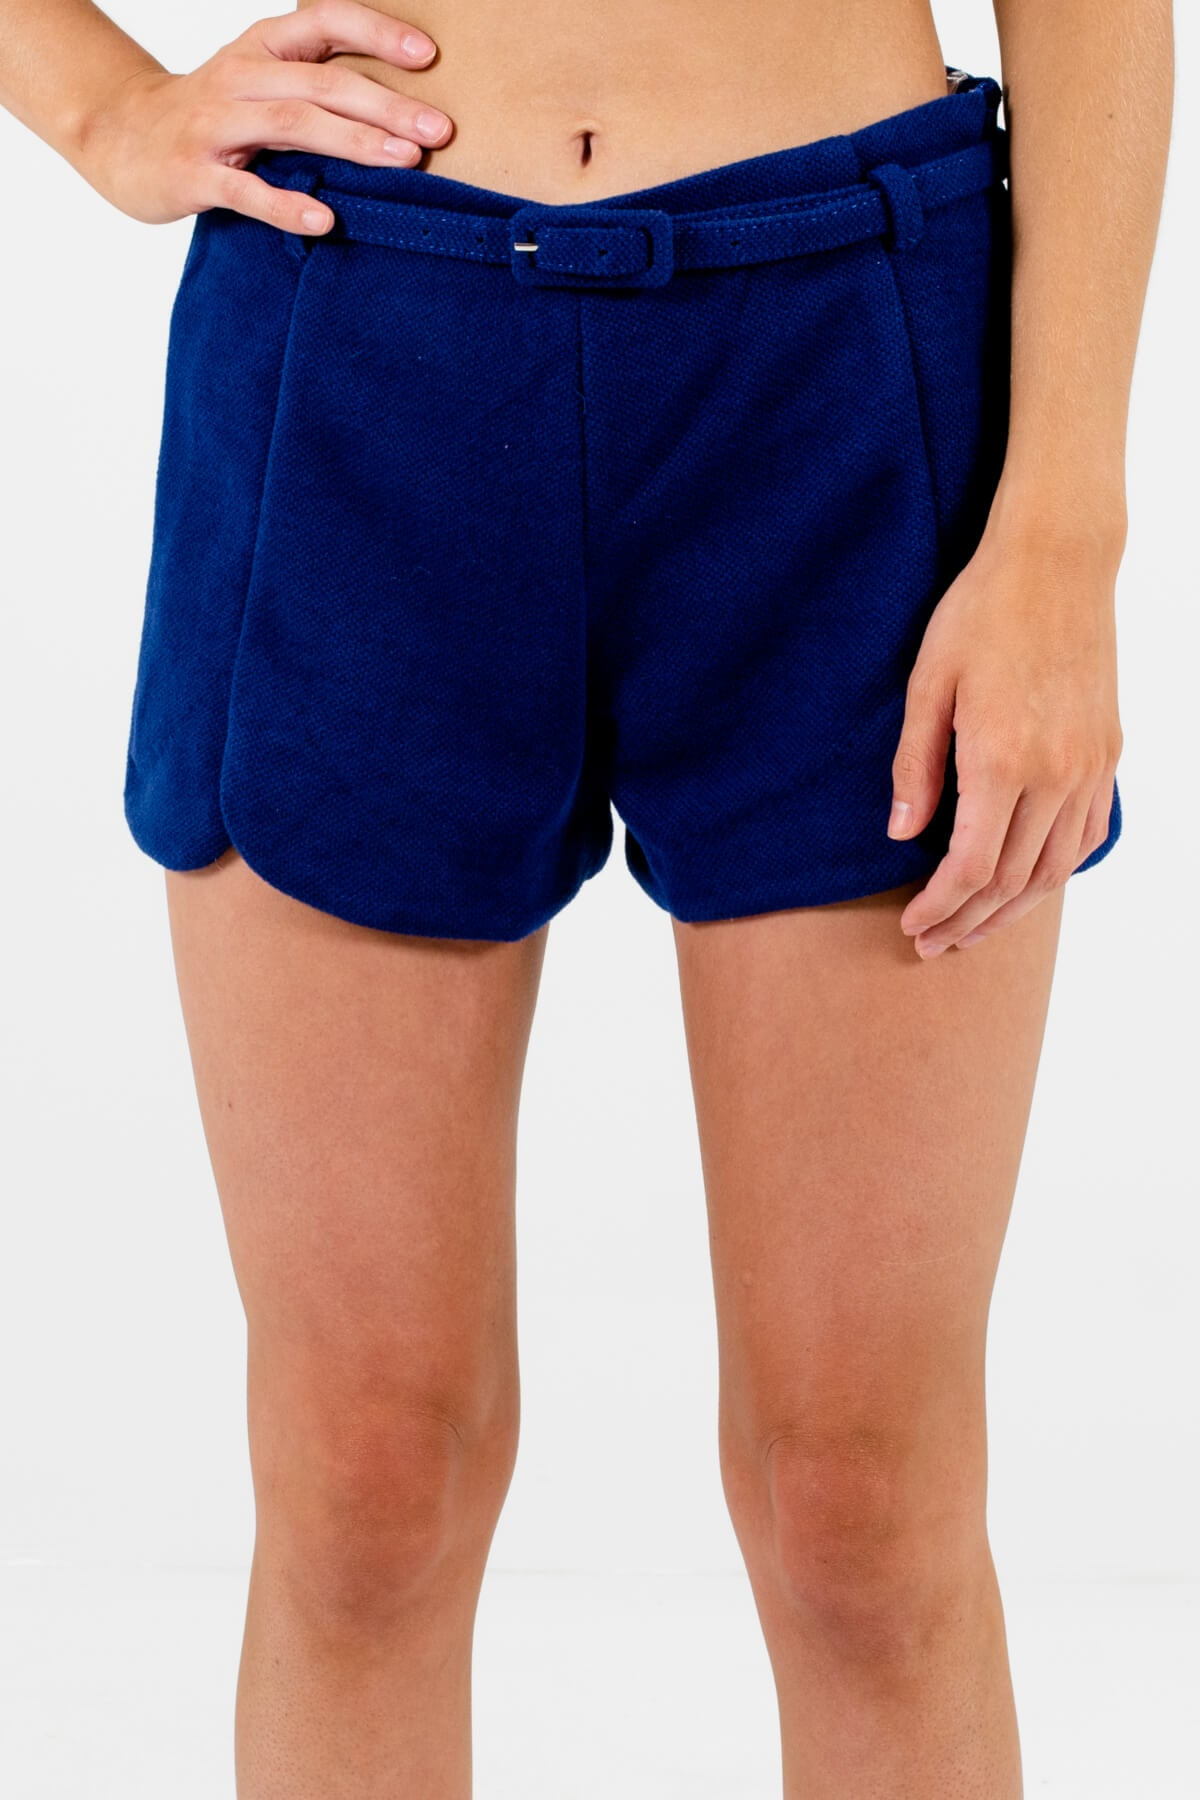 Royal Blue Business Casual Boutique Shorts for Women